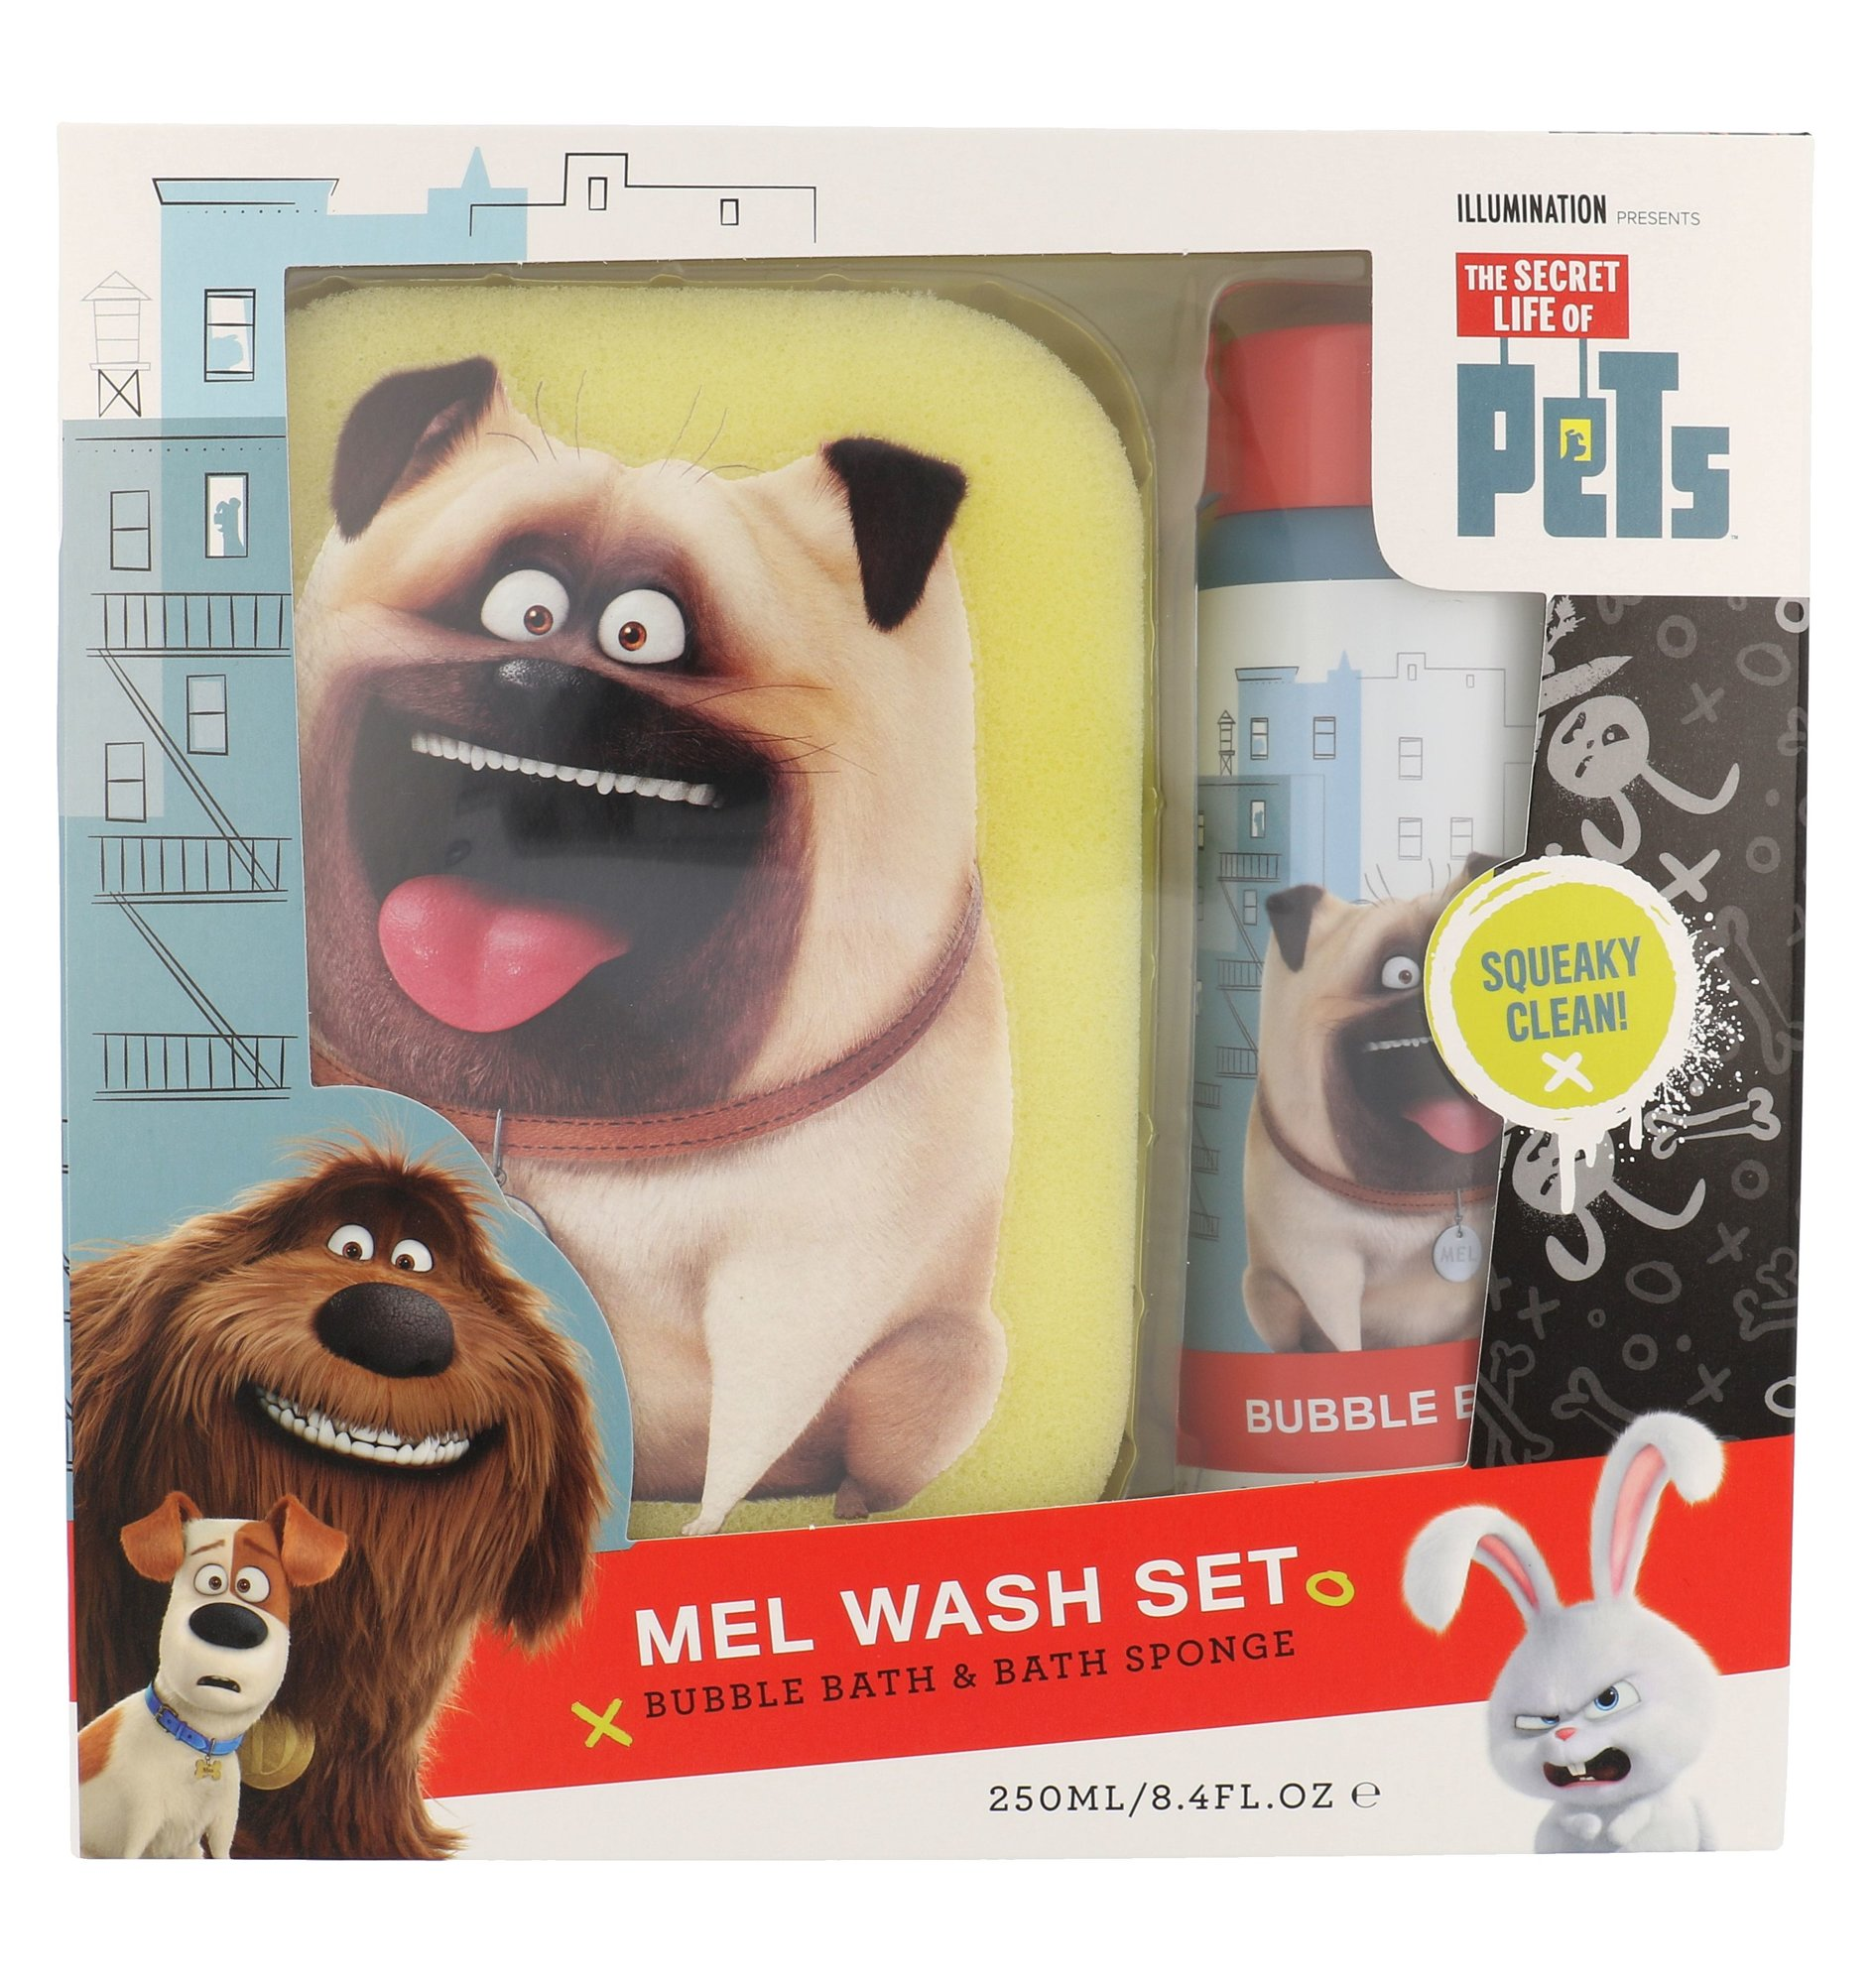 Universal The Secret Life Of Pets Mel Wash Kit Cosmetic 250ml